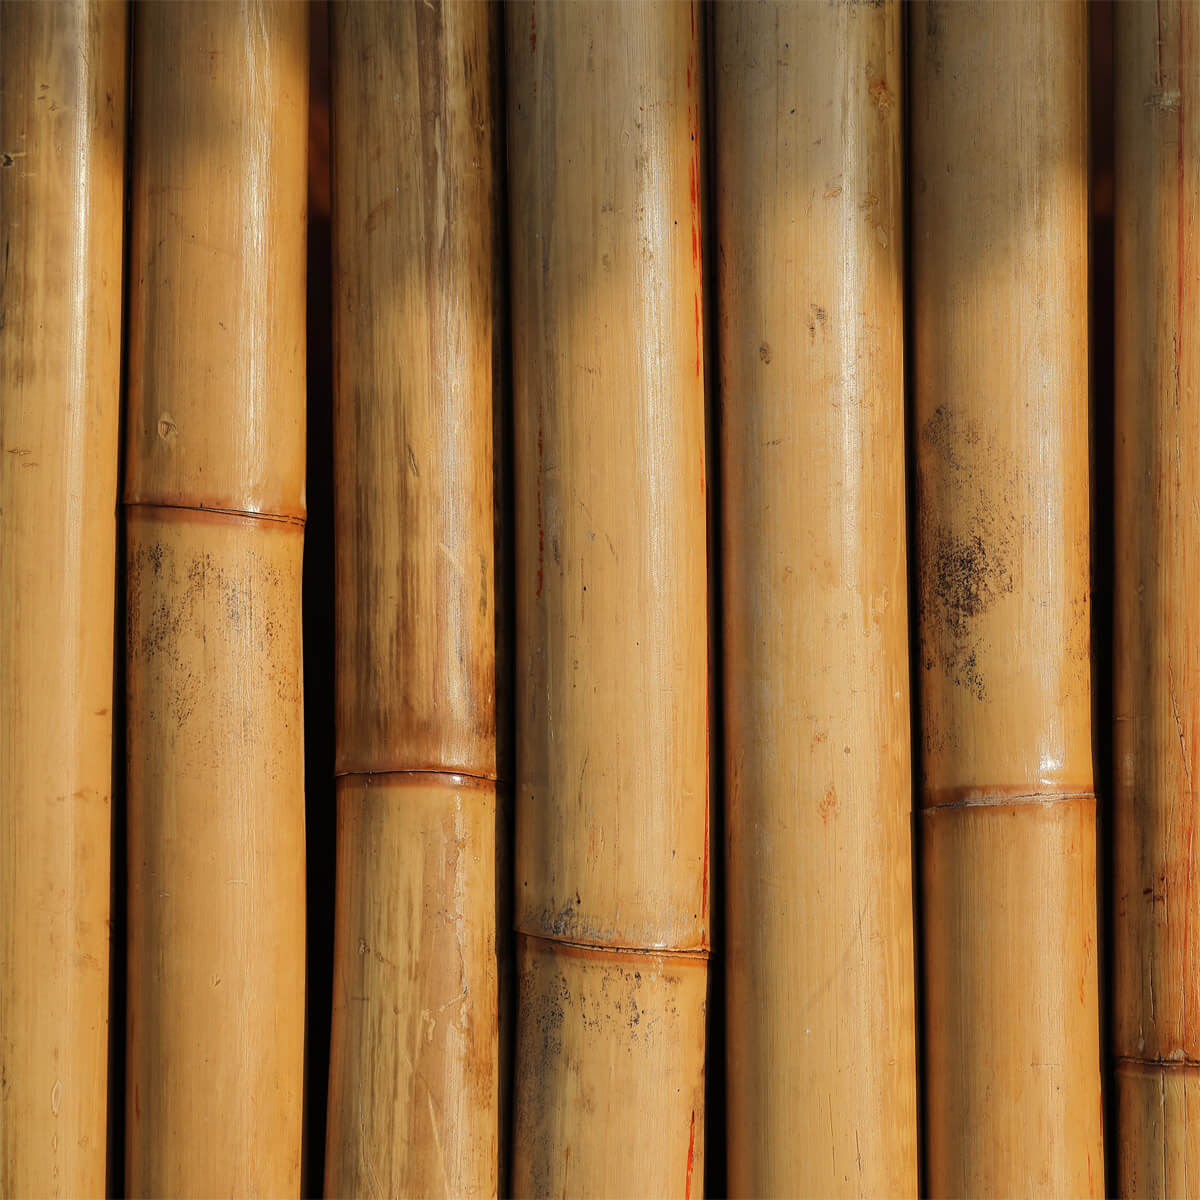 Bamboo's Uses – A Renewable Resource That Has many Uses